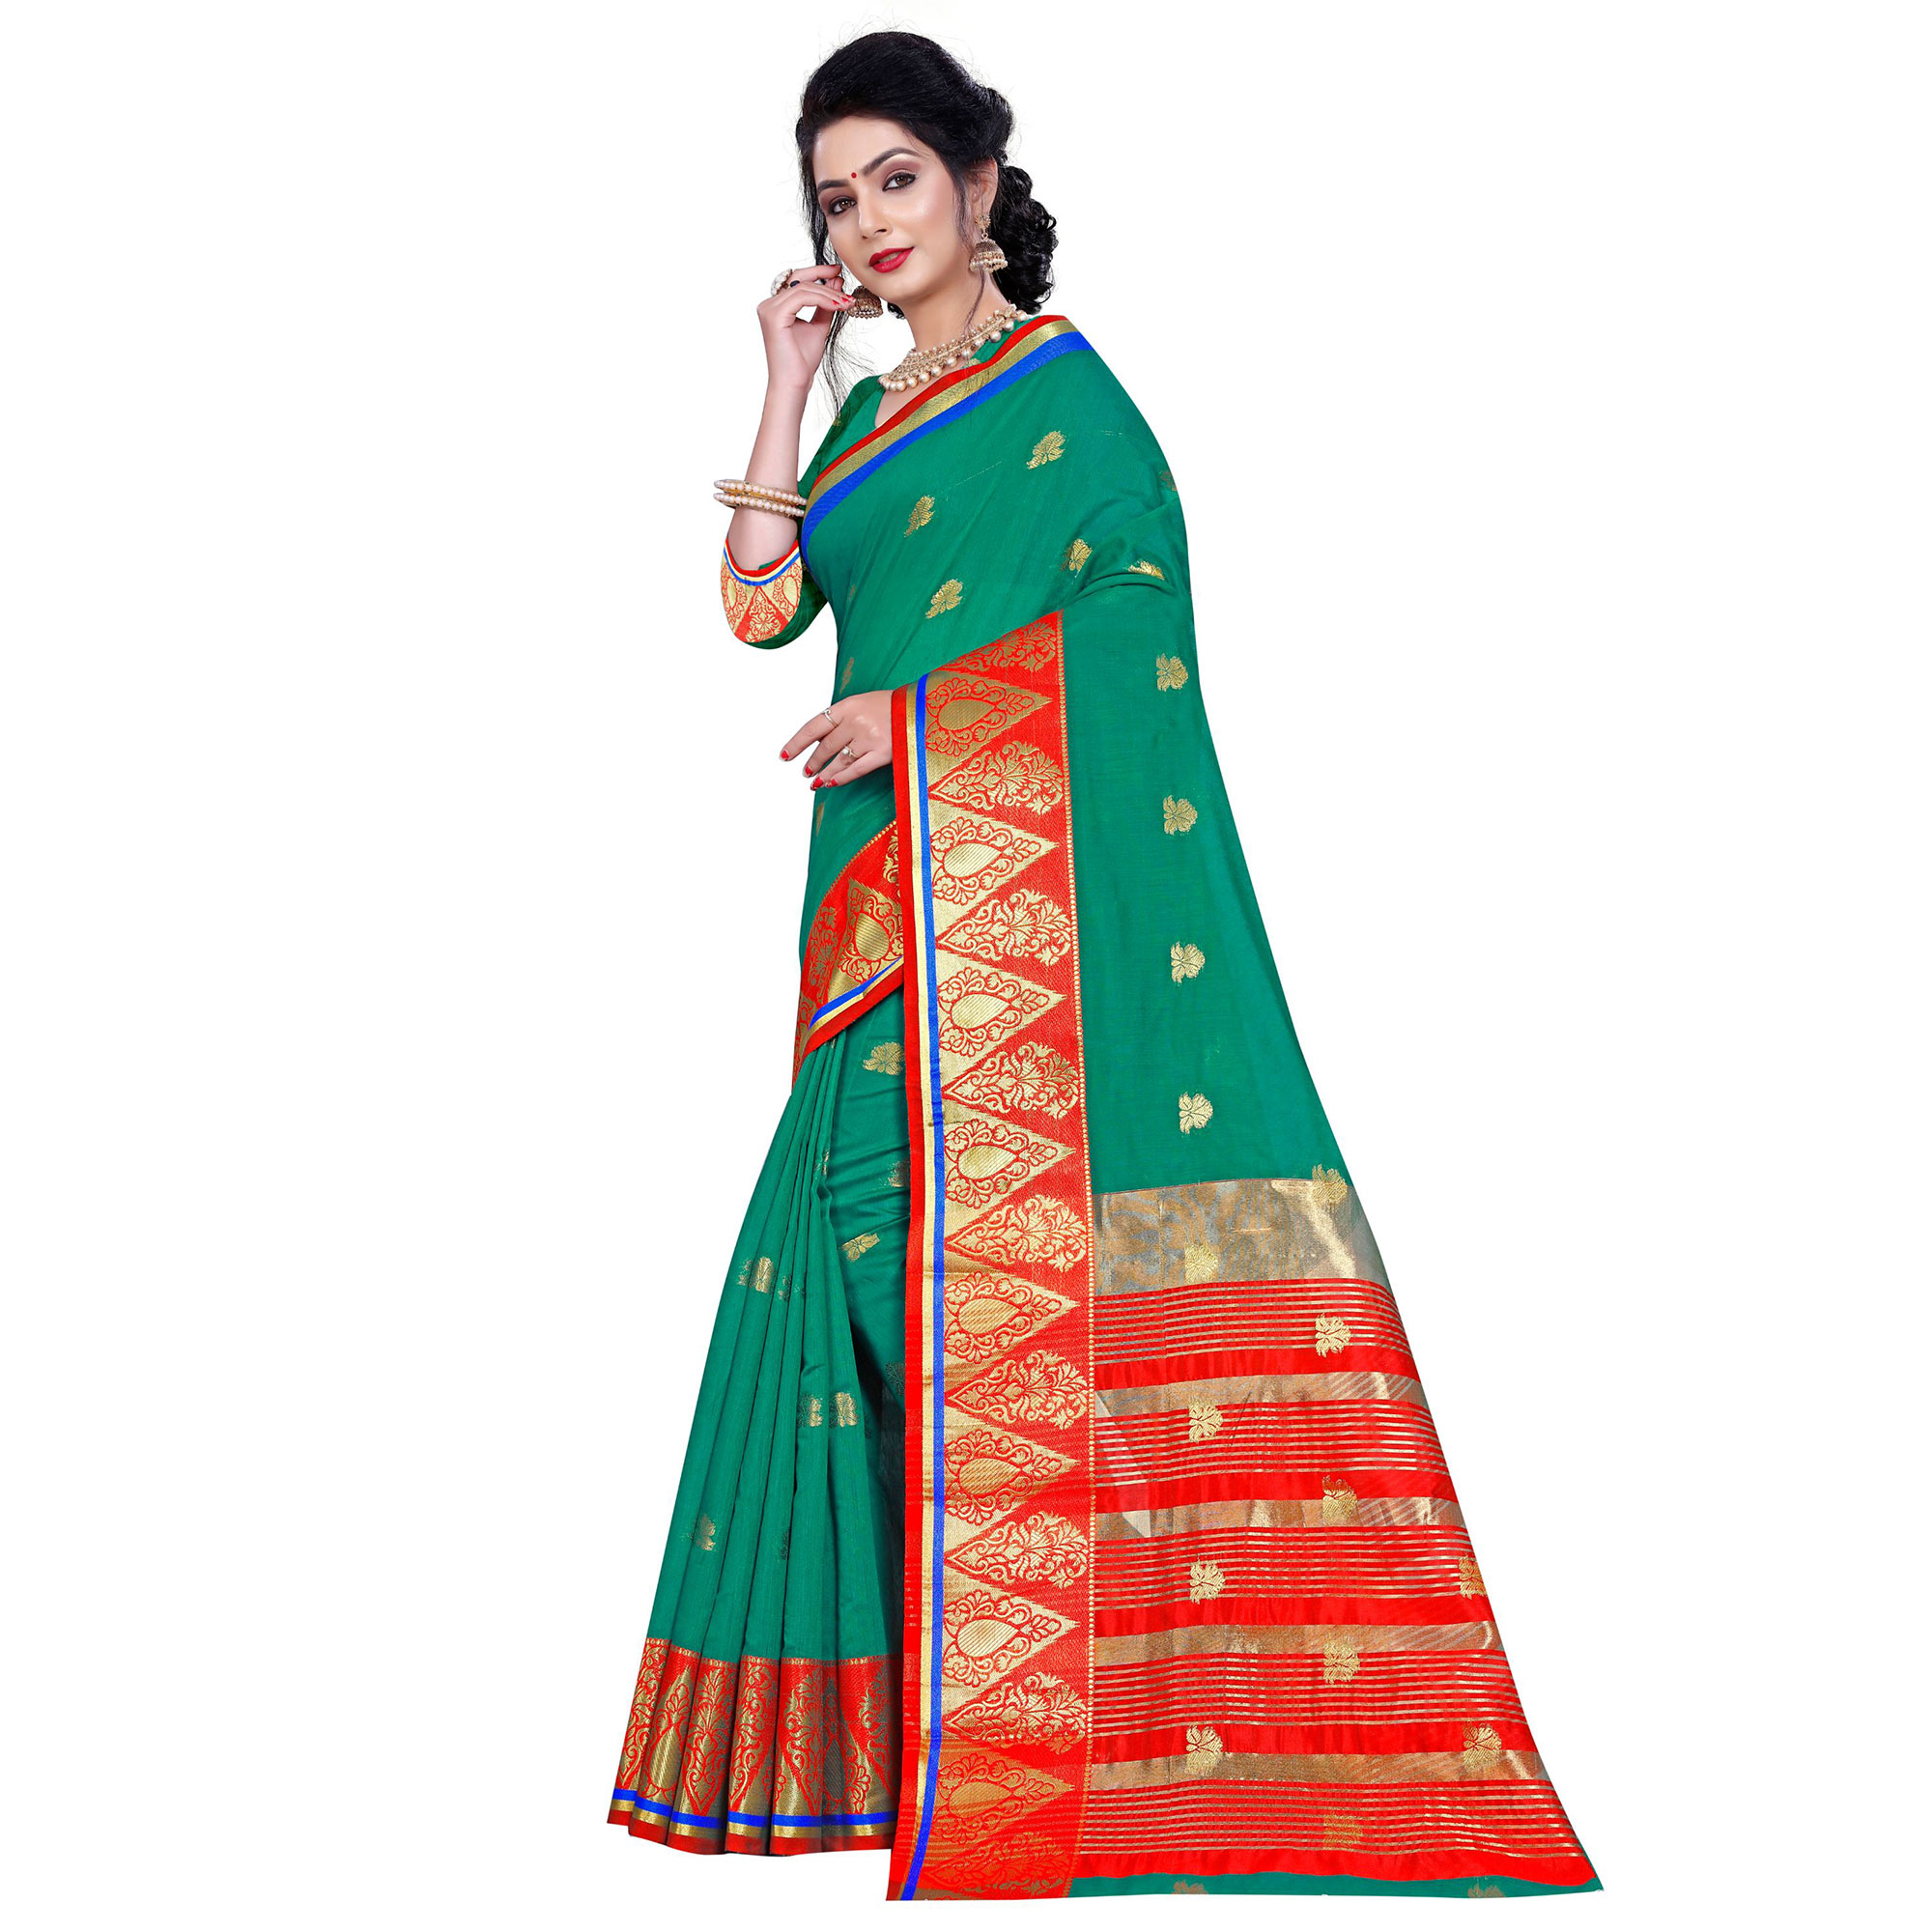 Demanding Turquoise Green Colored Festive Wear Woven Pure Cotton Saree